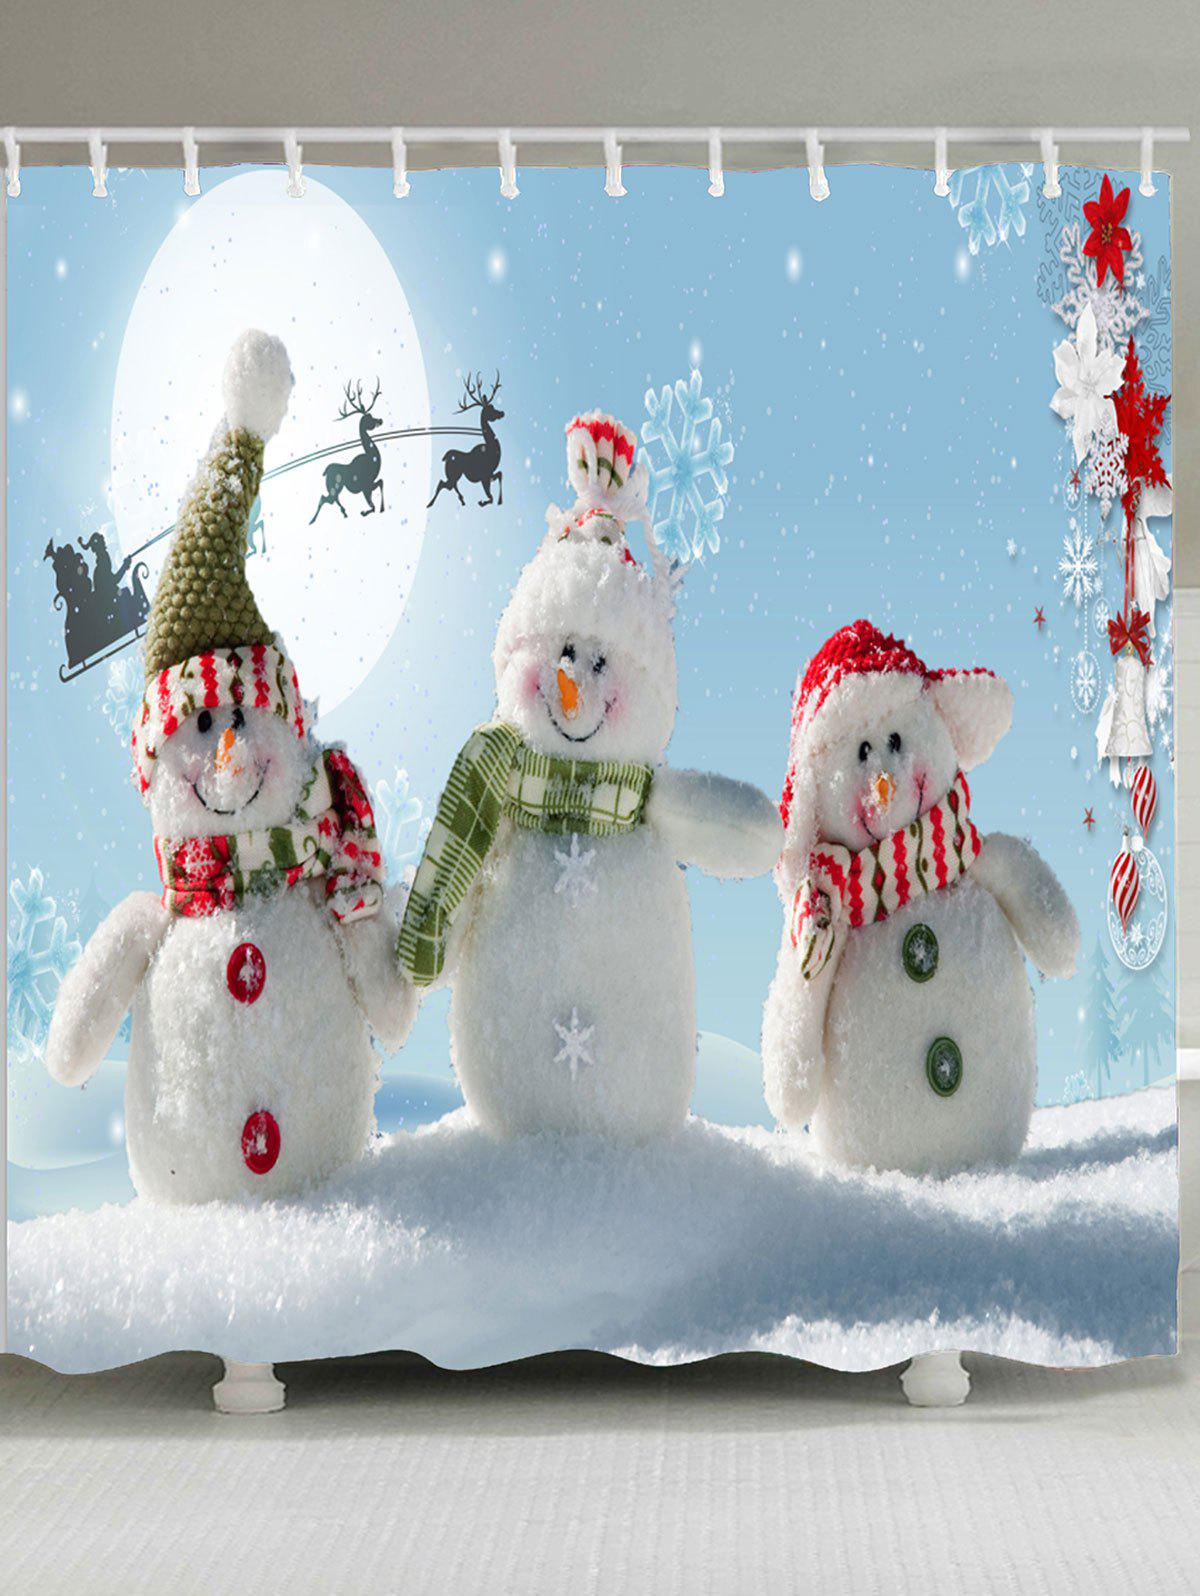 2018 Christmas Snowman Family Patterned Shower Curtain BLUE/WHITE W ...